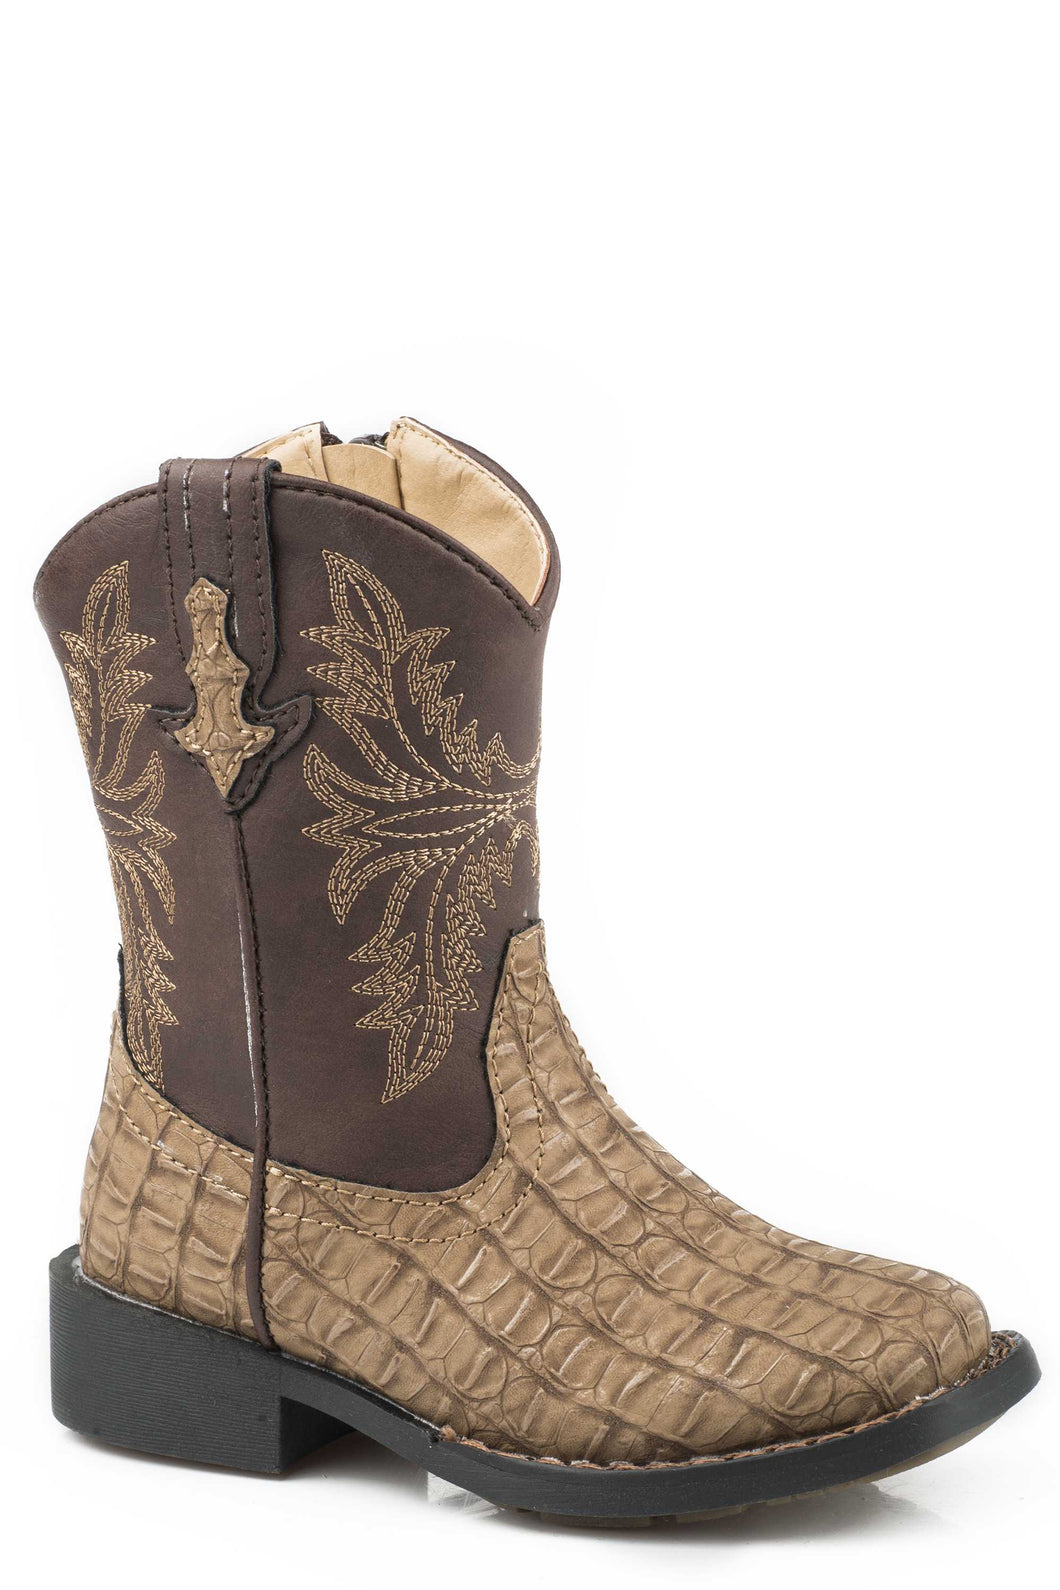 Chomp Boot Toddlers Boots Tan Embossed Caiman Vamp